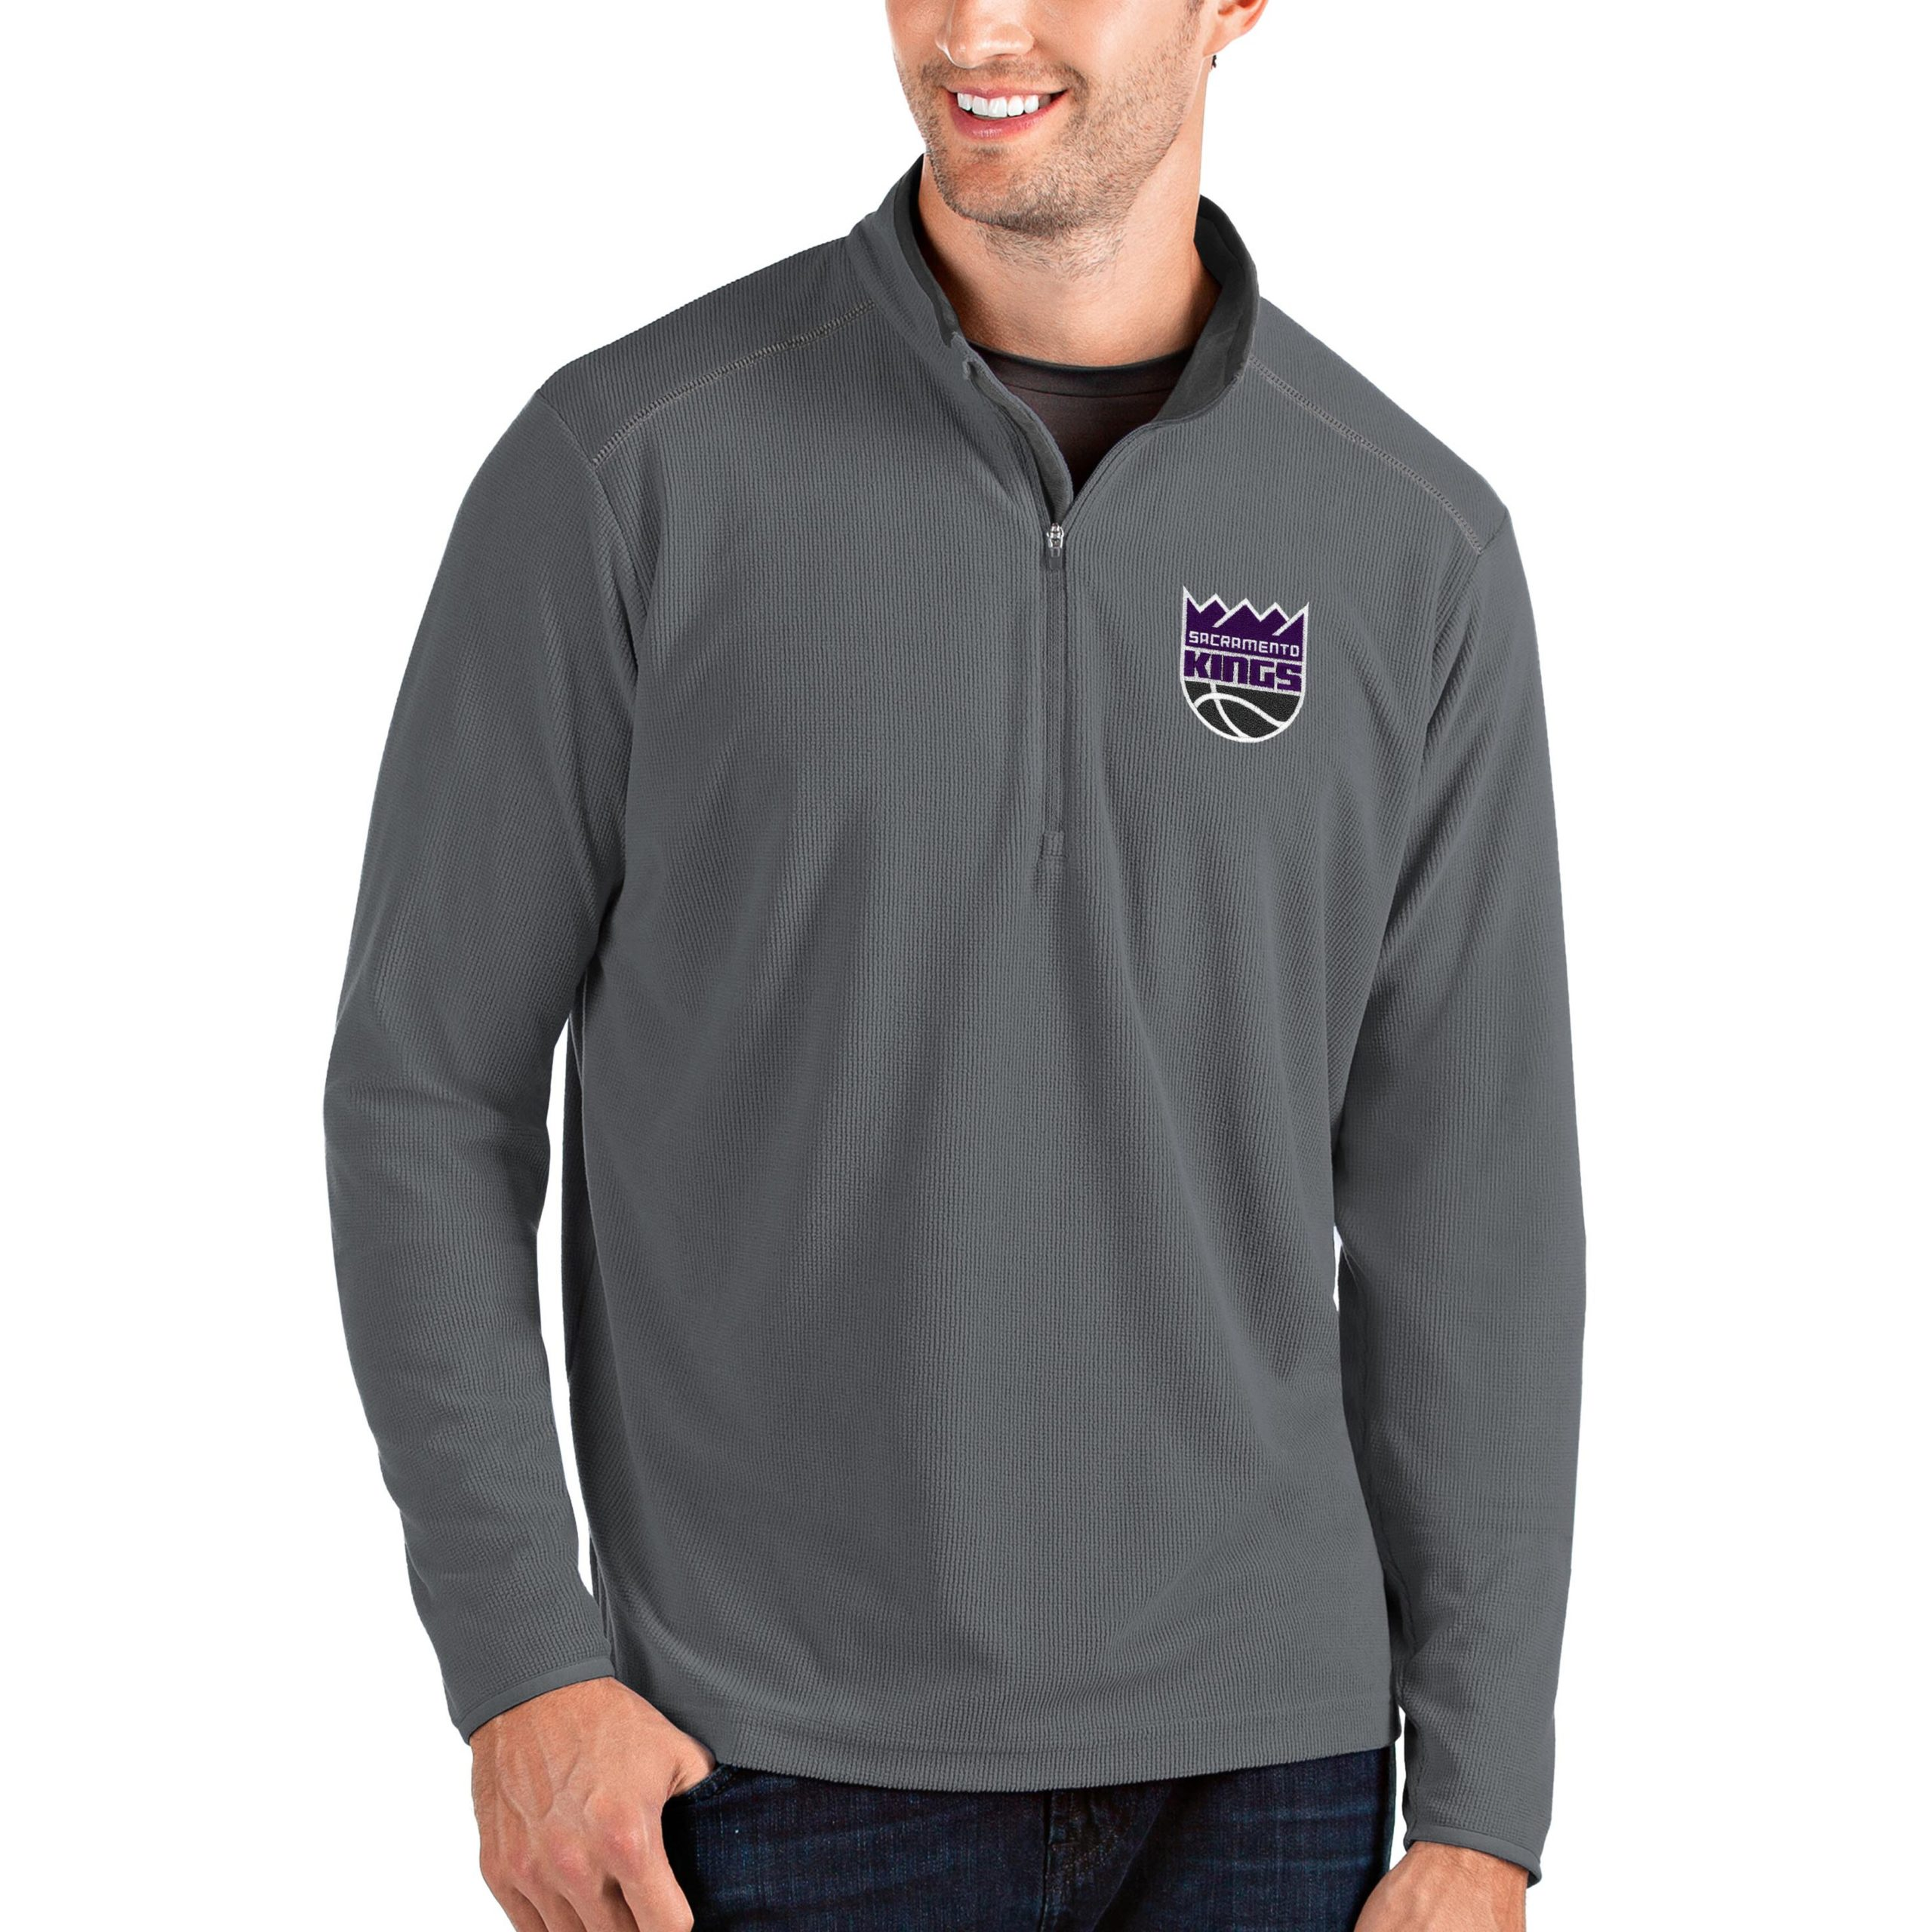 Sacramento Kings Antigua Big & Tall Glacier Quarter-Zip Pullover Jacket - Gray/Gray